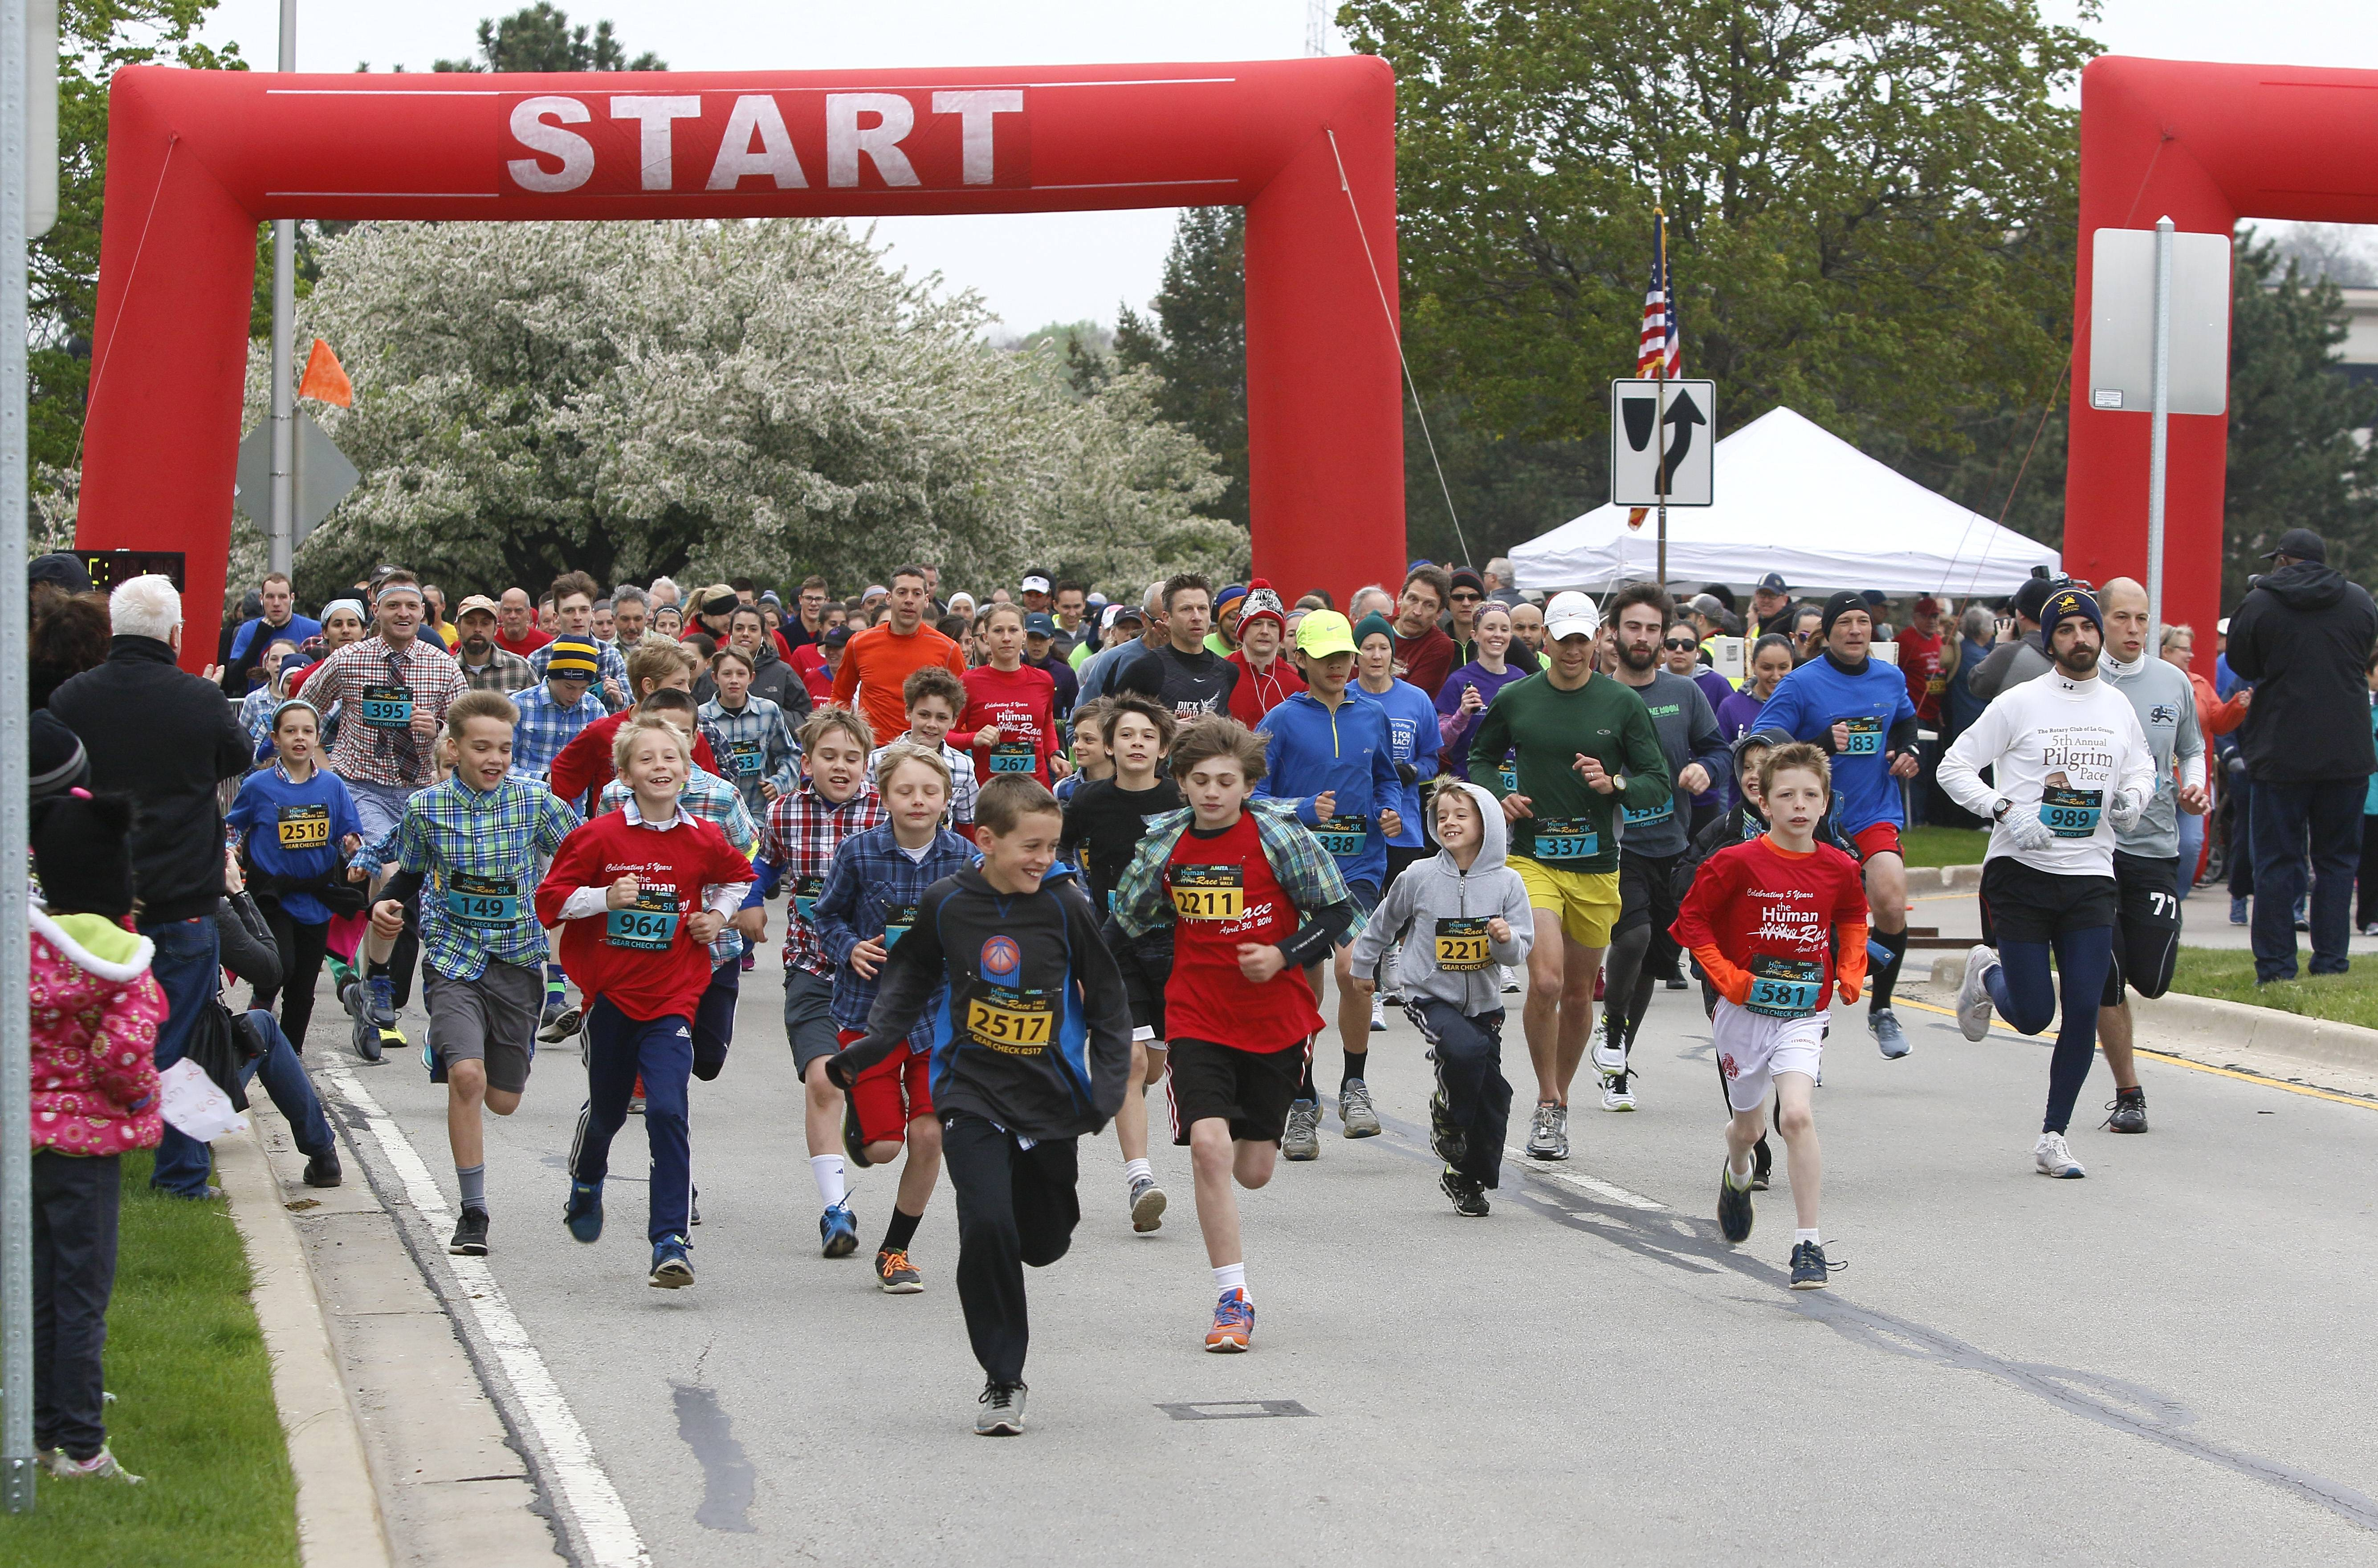 Runners and walkers participate on behalf of more than 70 nonprofit organizations in the DuPage Human Race in Downers Grove.